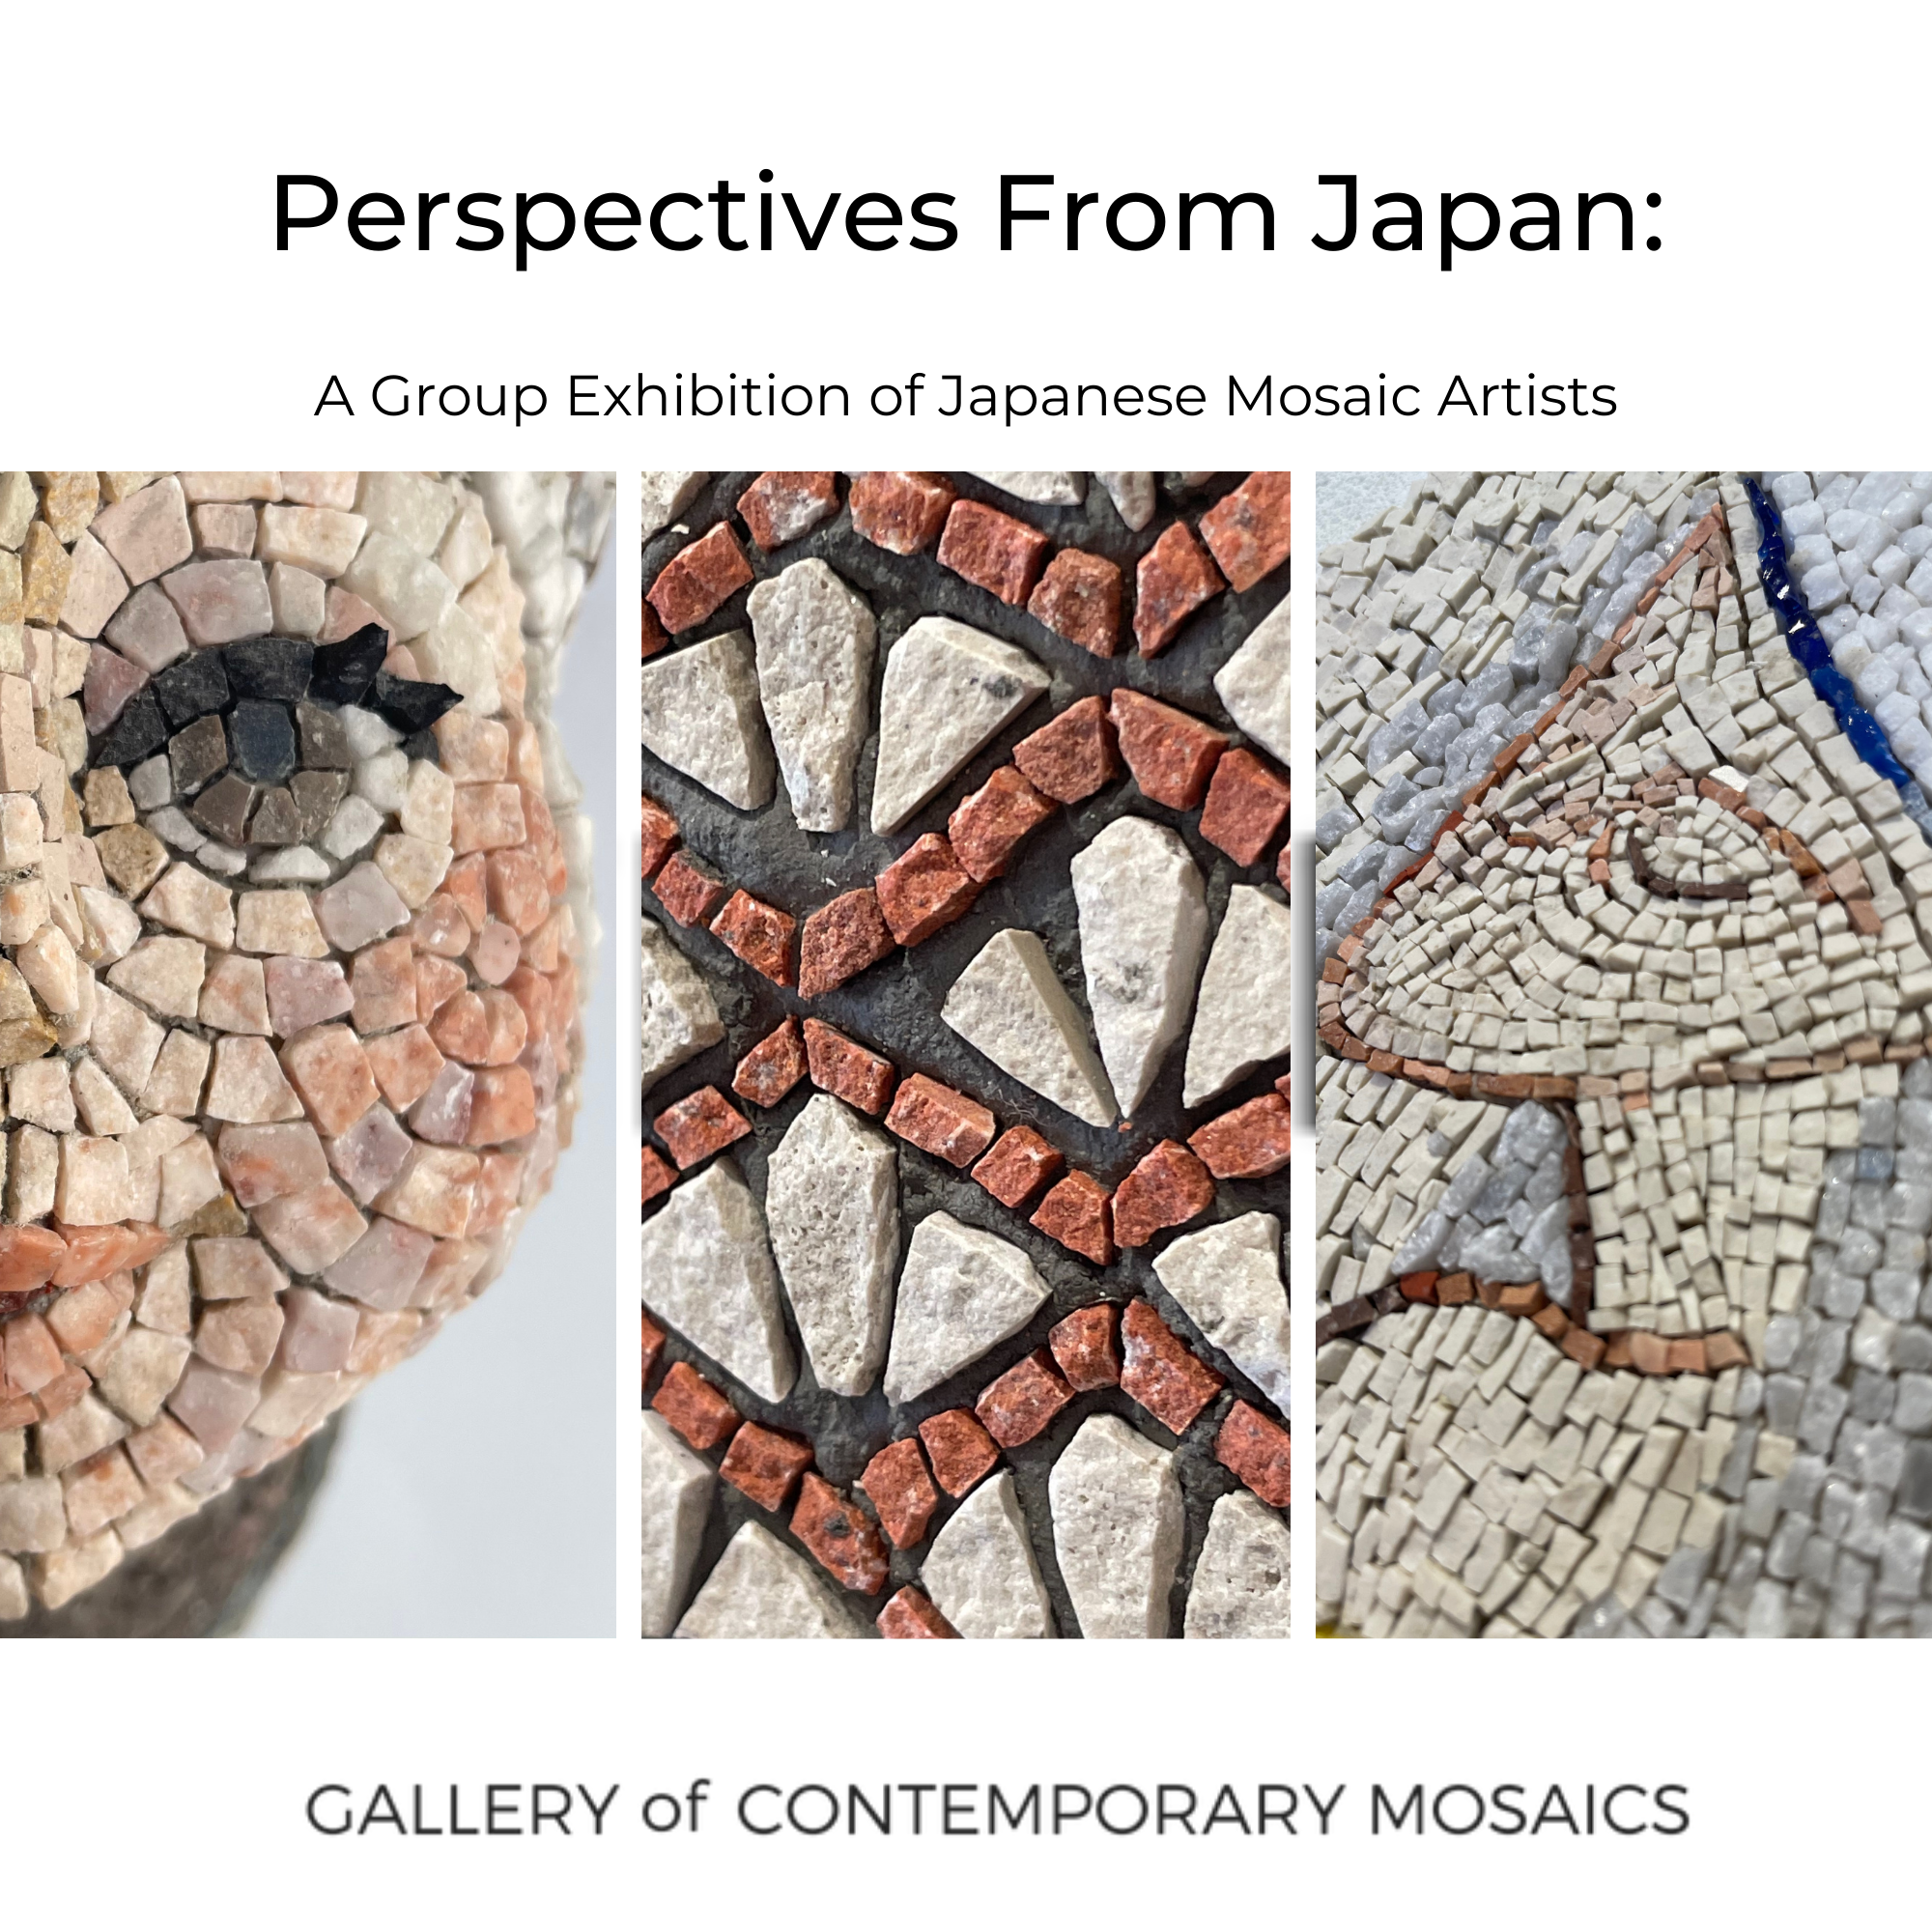 Perspectives From Japan: A Group Exhibition of Japanese Mosaic Artists